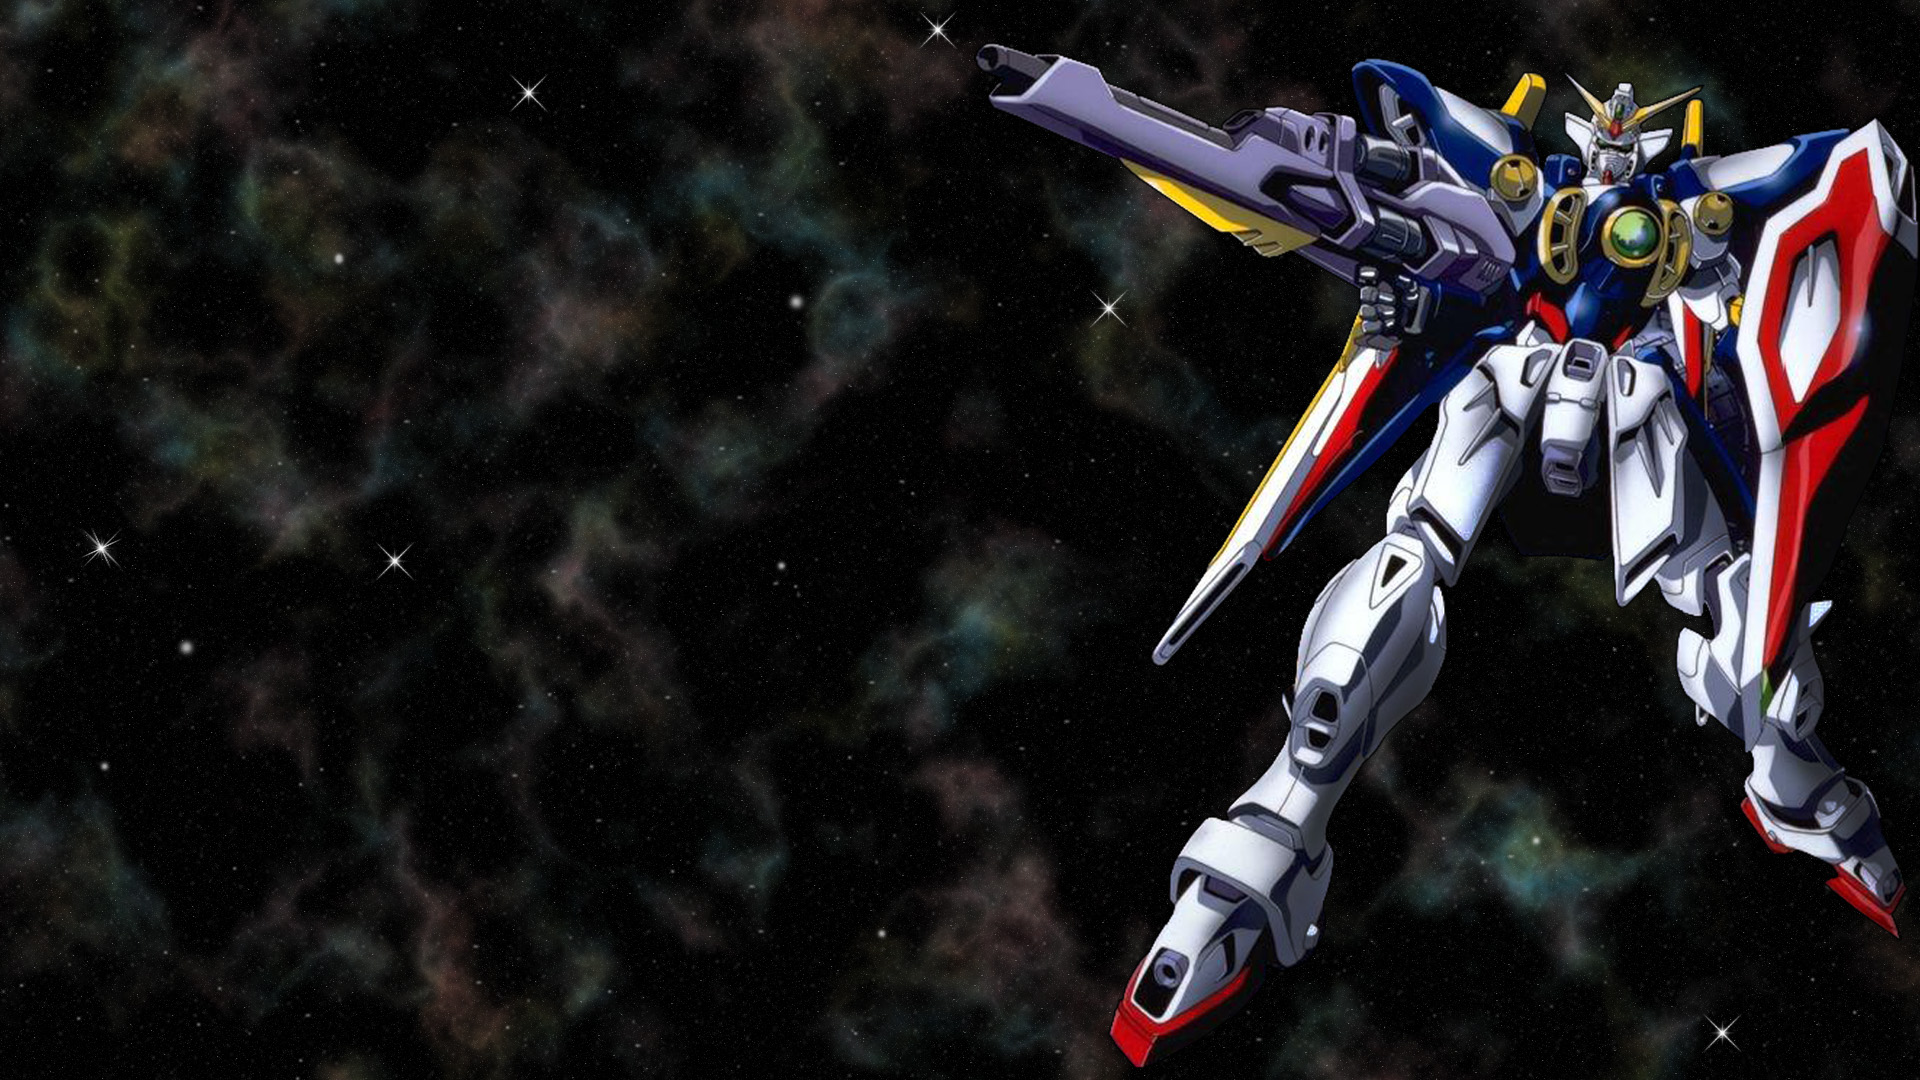 Gundam Wallpaper Hd Release date Specs Review Redesign and Price 1920x1080